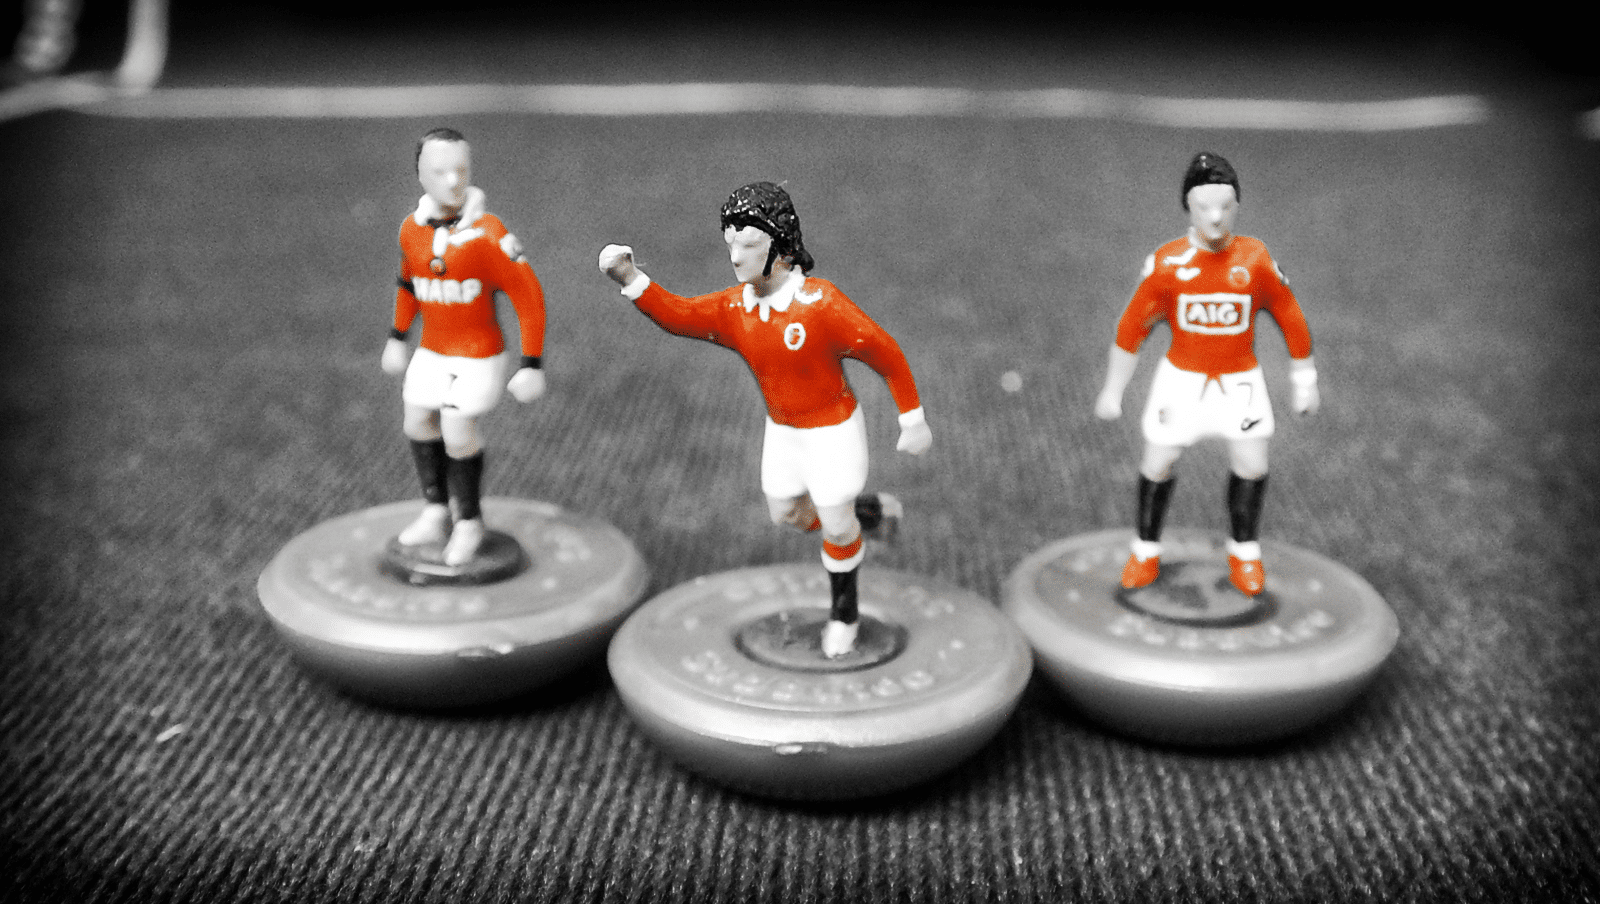 The Art of Subbuteo